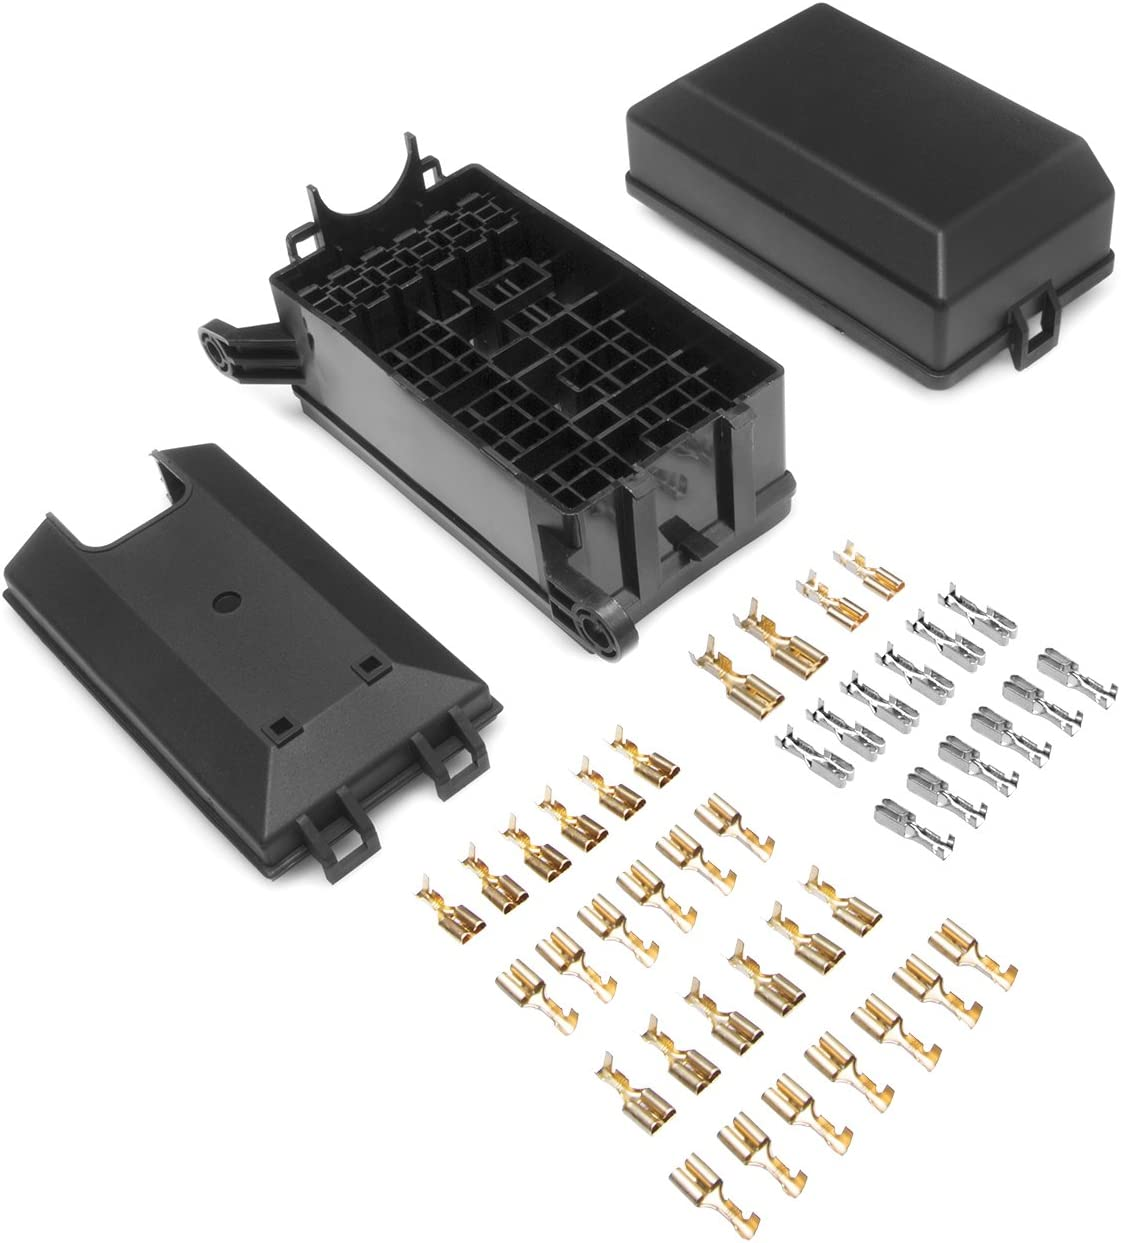 12-Slot Relay Box 6 Relays 6 ATC//ATO Fuses Holder Block with 41pcs Metallic Pins